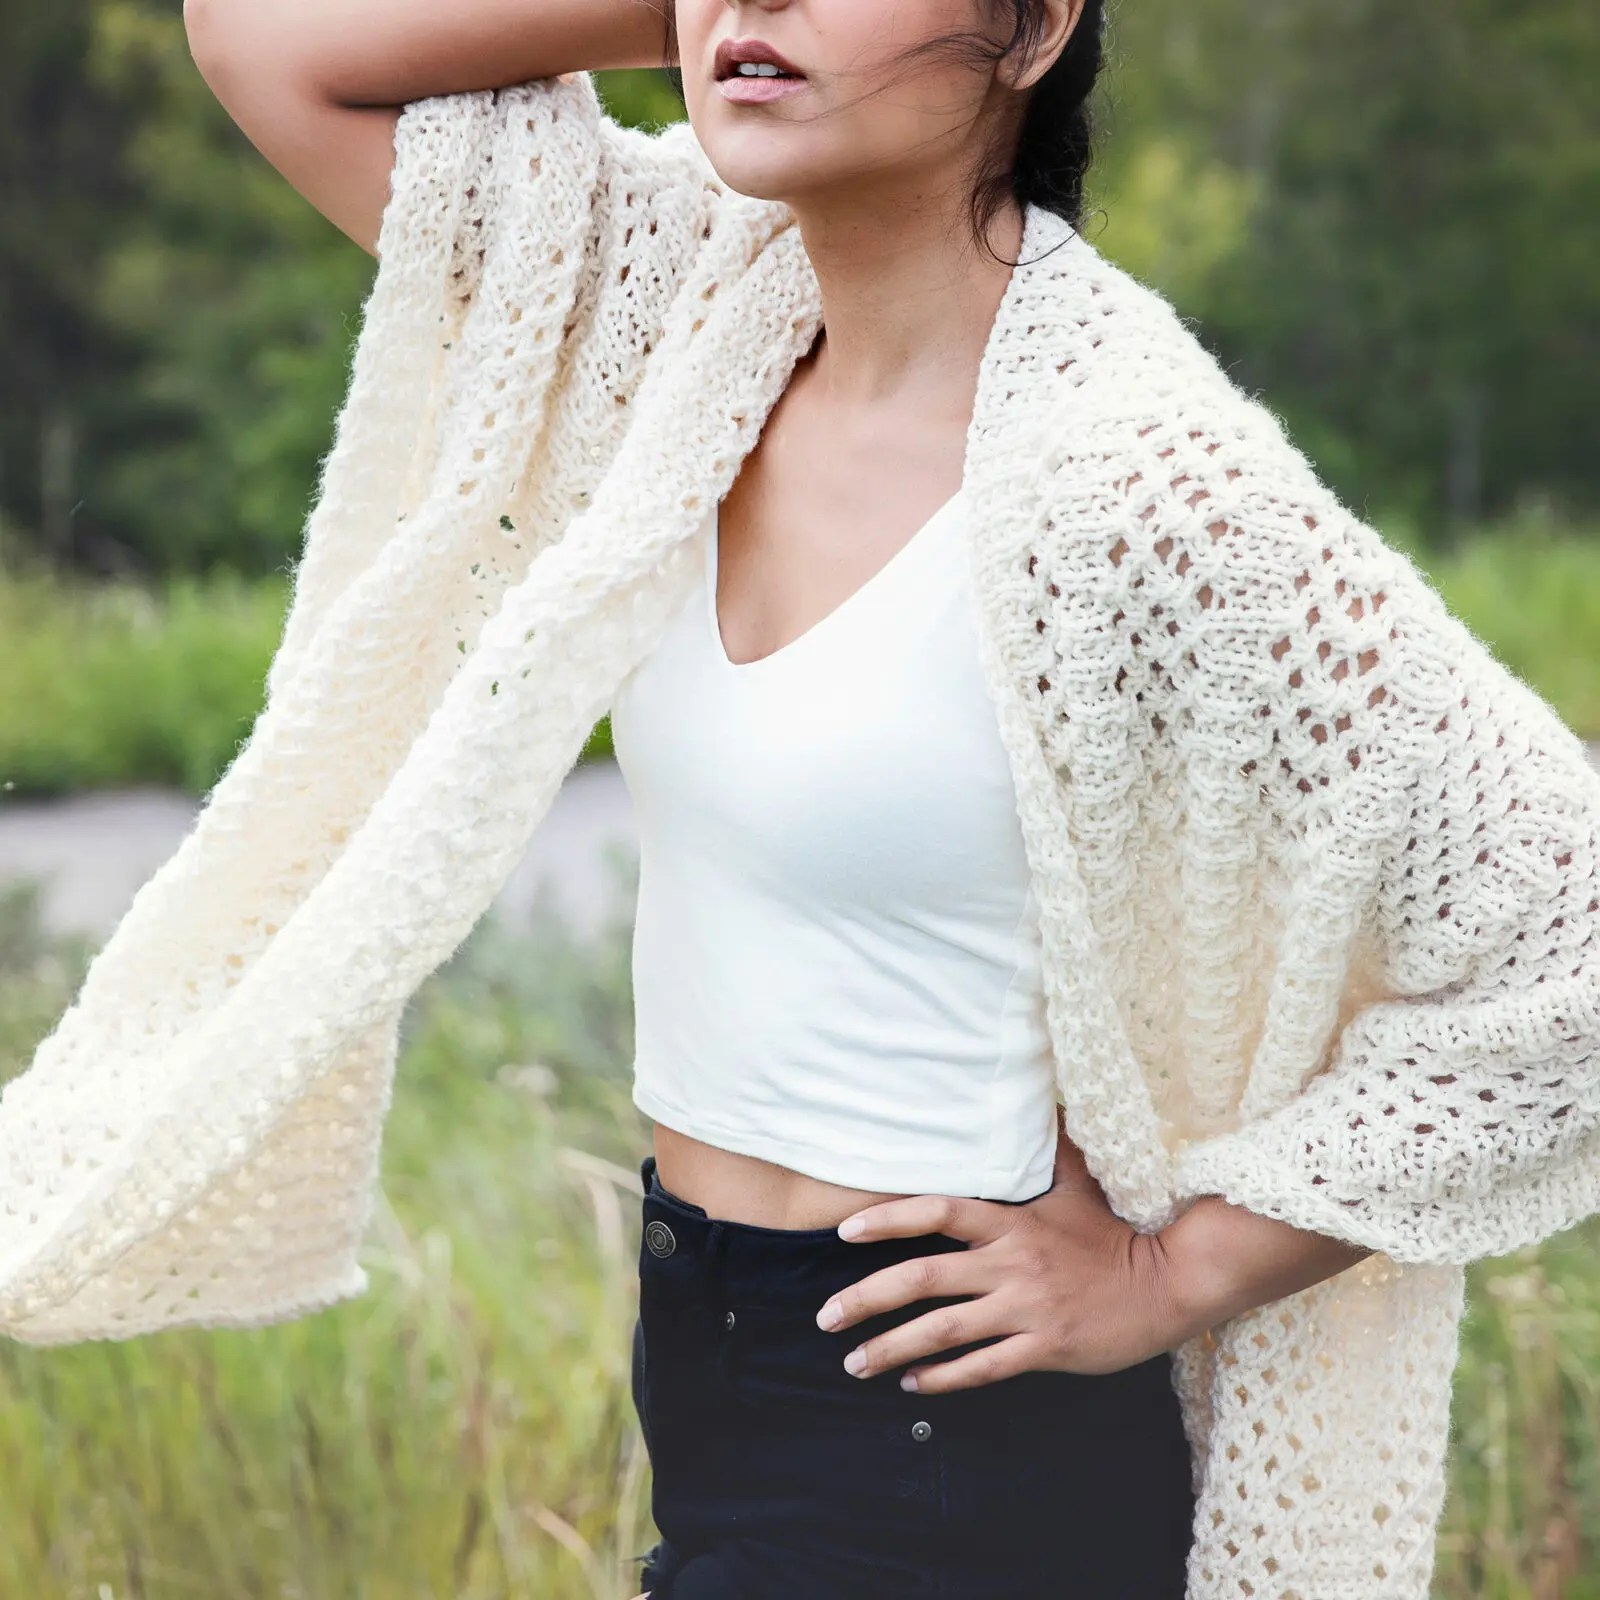 Knitted Wrap Pattern for a Bohemian Inspired Shawl - Leelee Knits